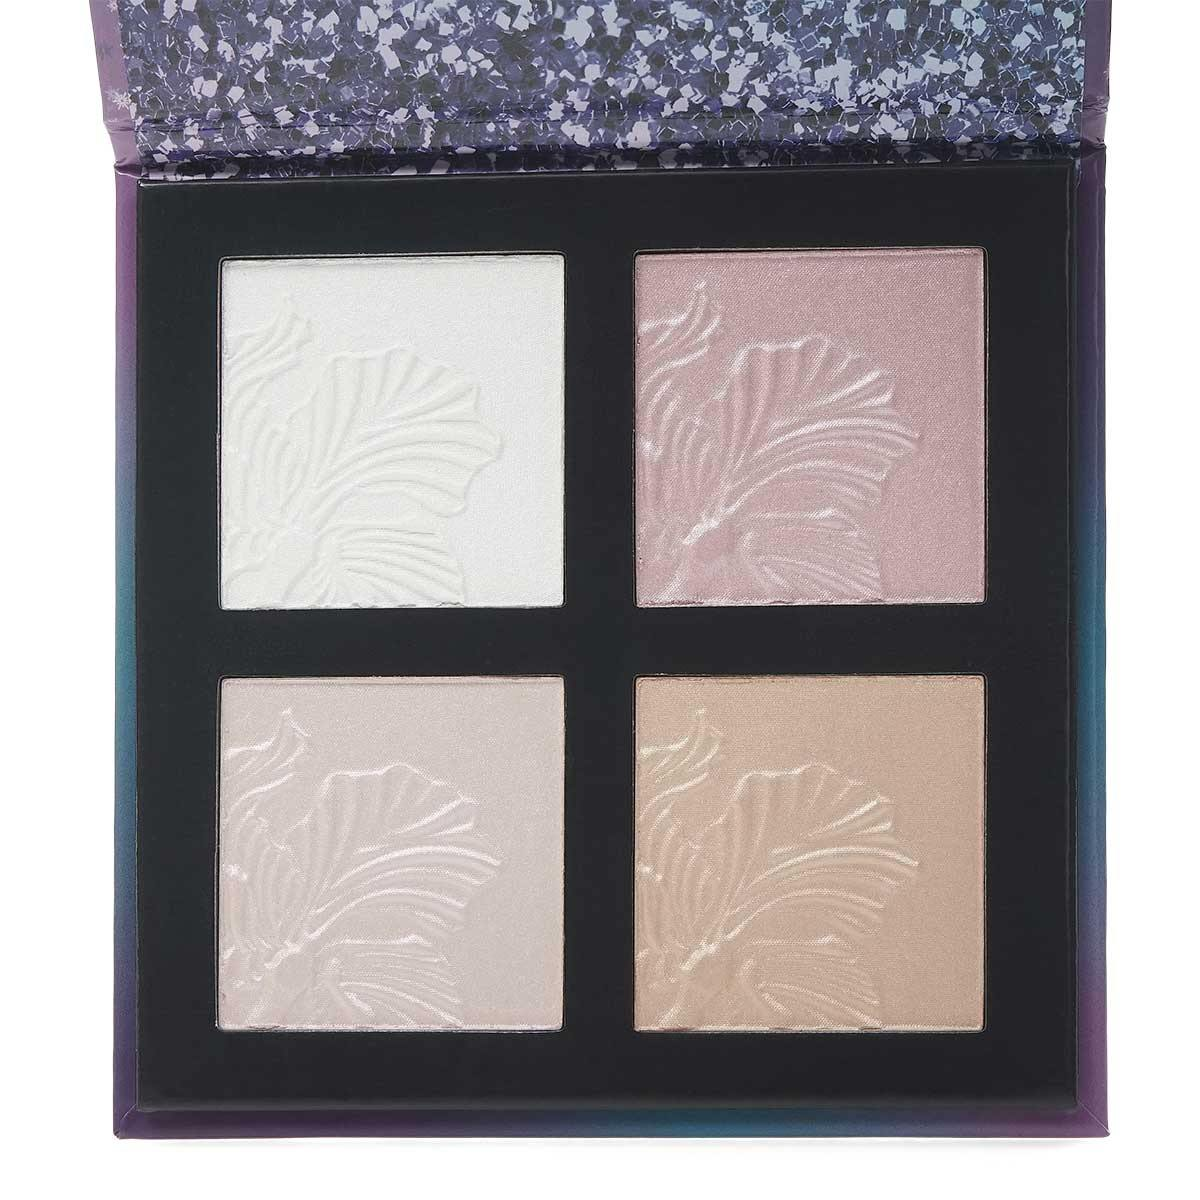 Wet n Wild Highlighting Palette 3pc Display (1/cs)